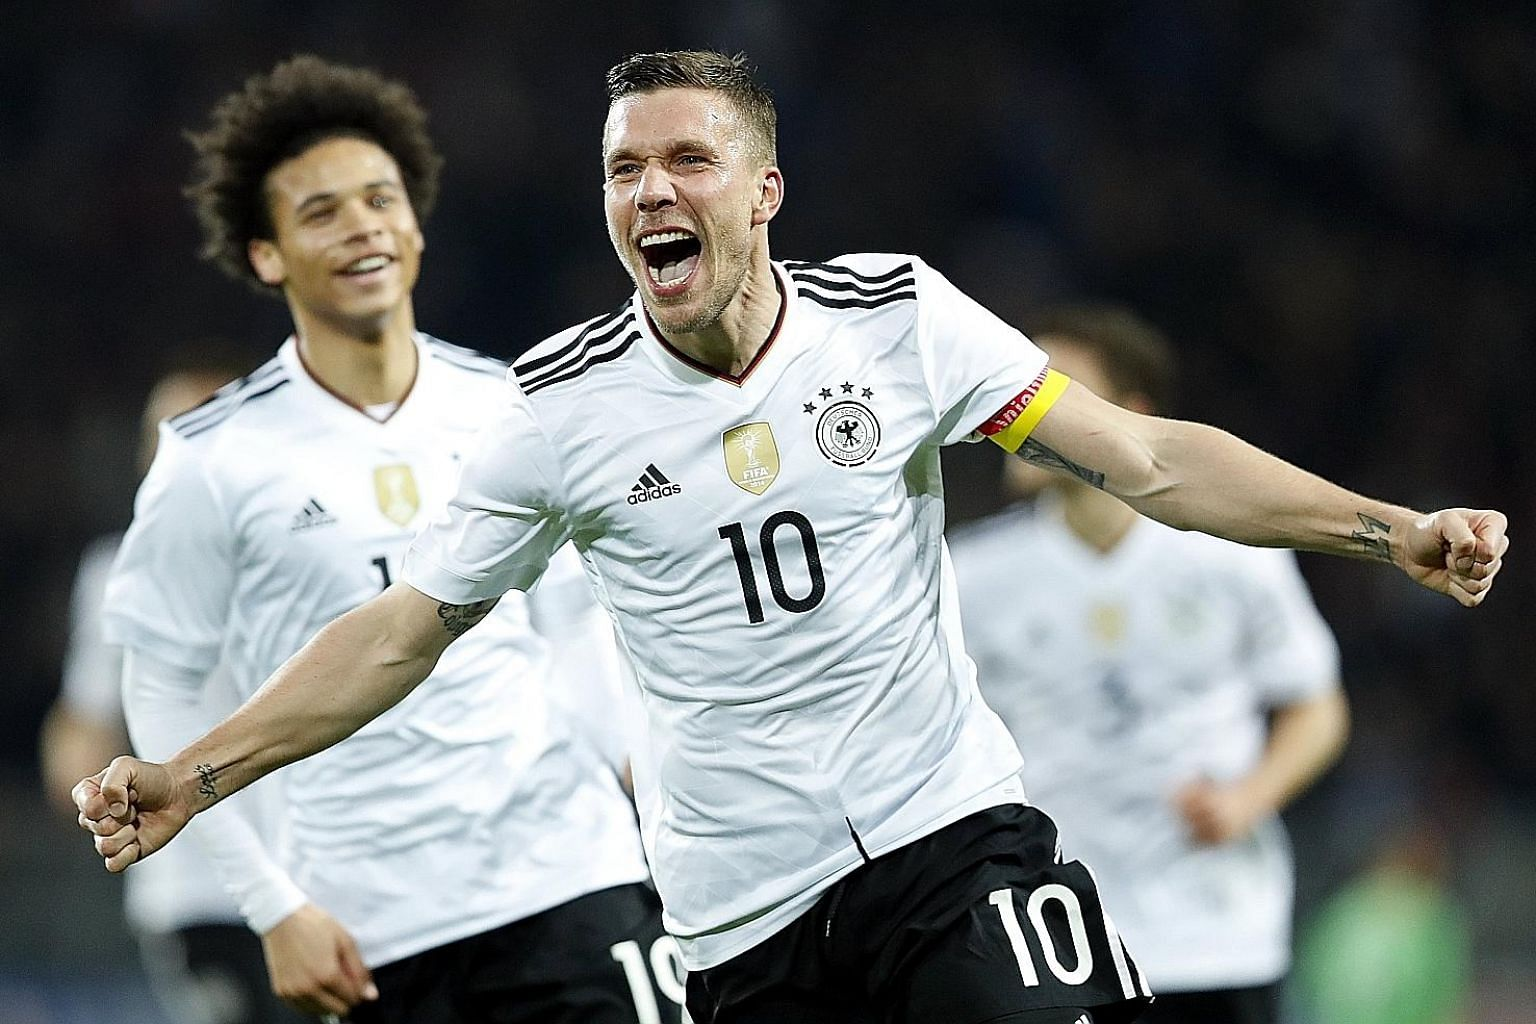 Lukas Podolski celebrating his 49th and final goal for Die Mannschaft. Podolski ends a glittering career for Germany, having won the 2014 World Cup.